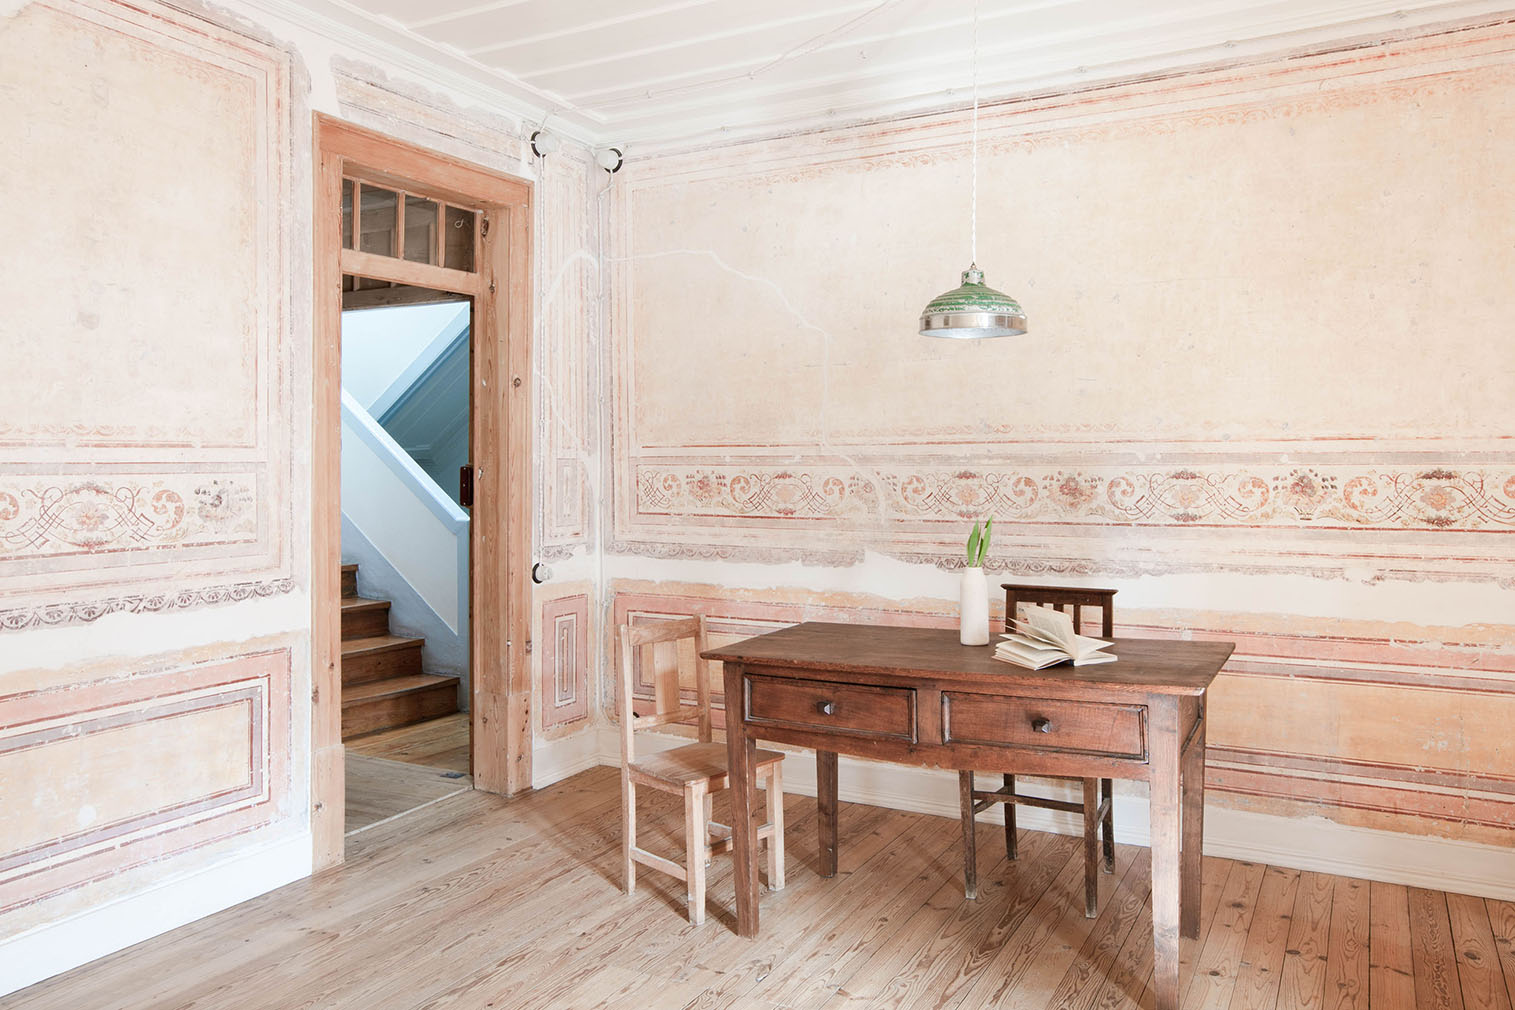 A frescoed apartment in Mouraria